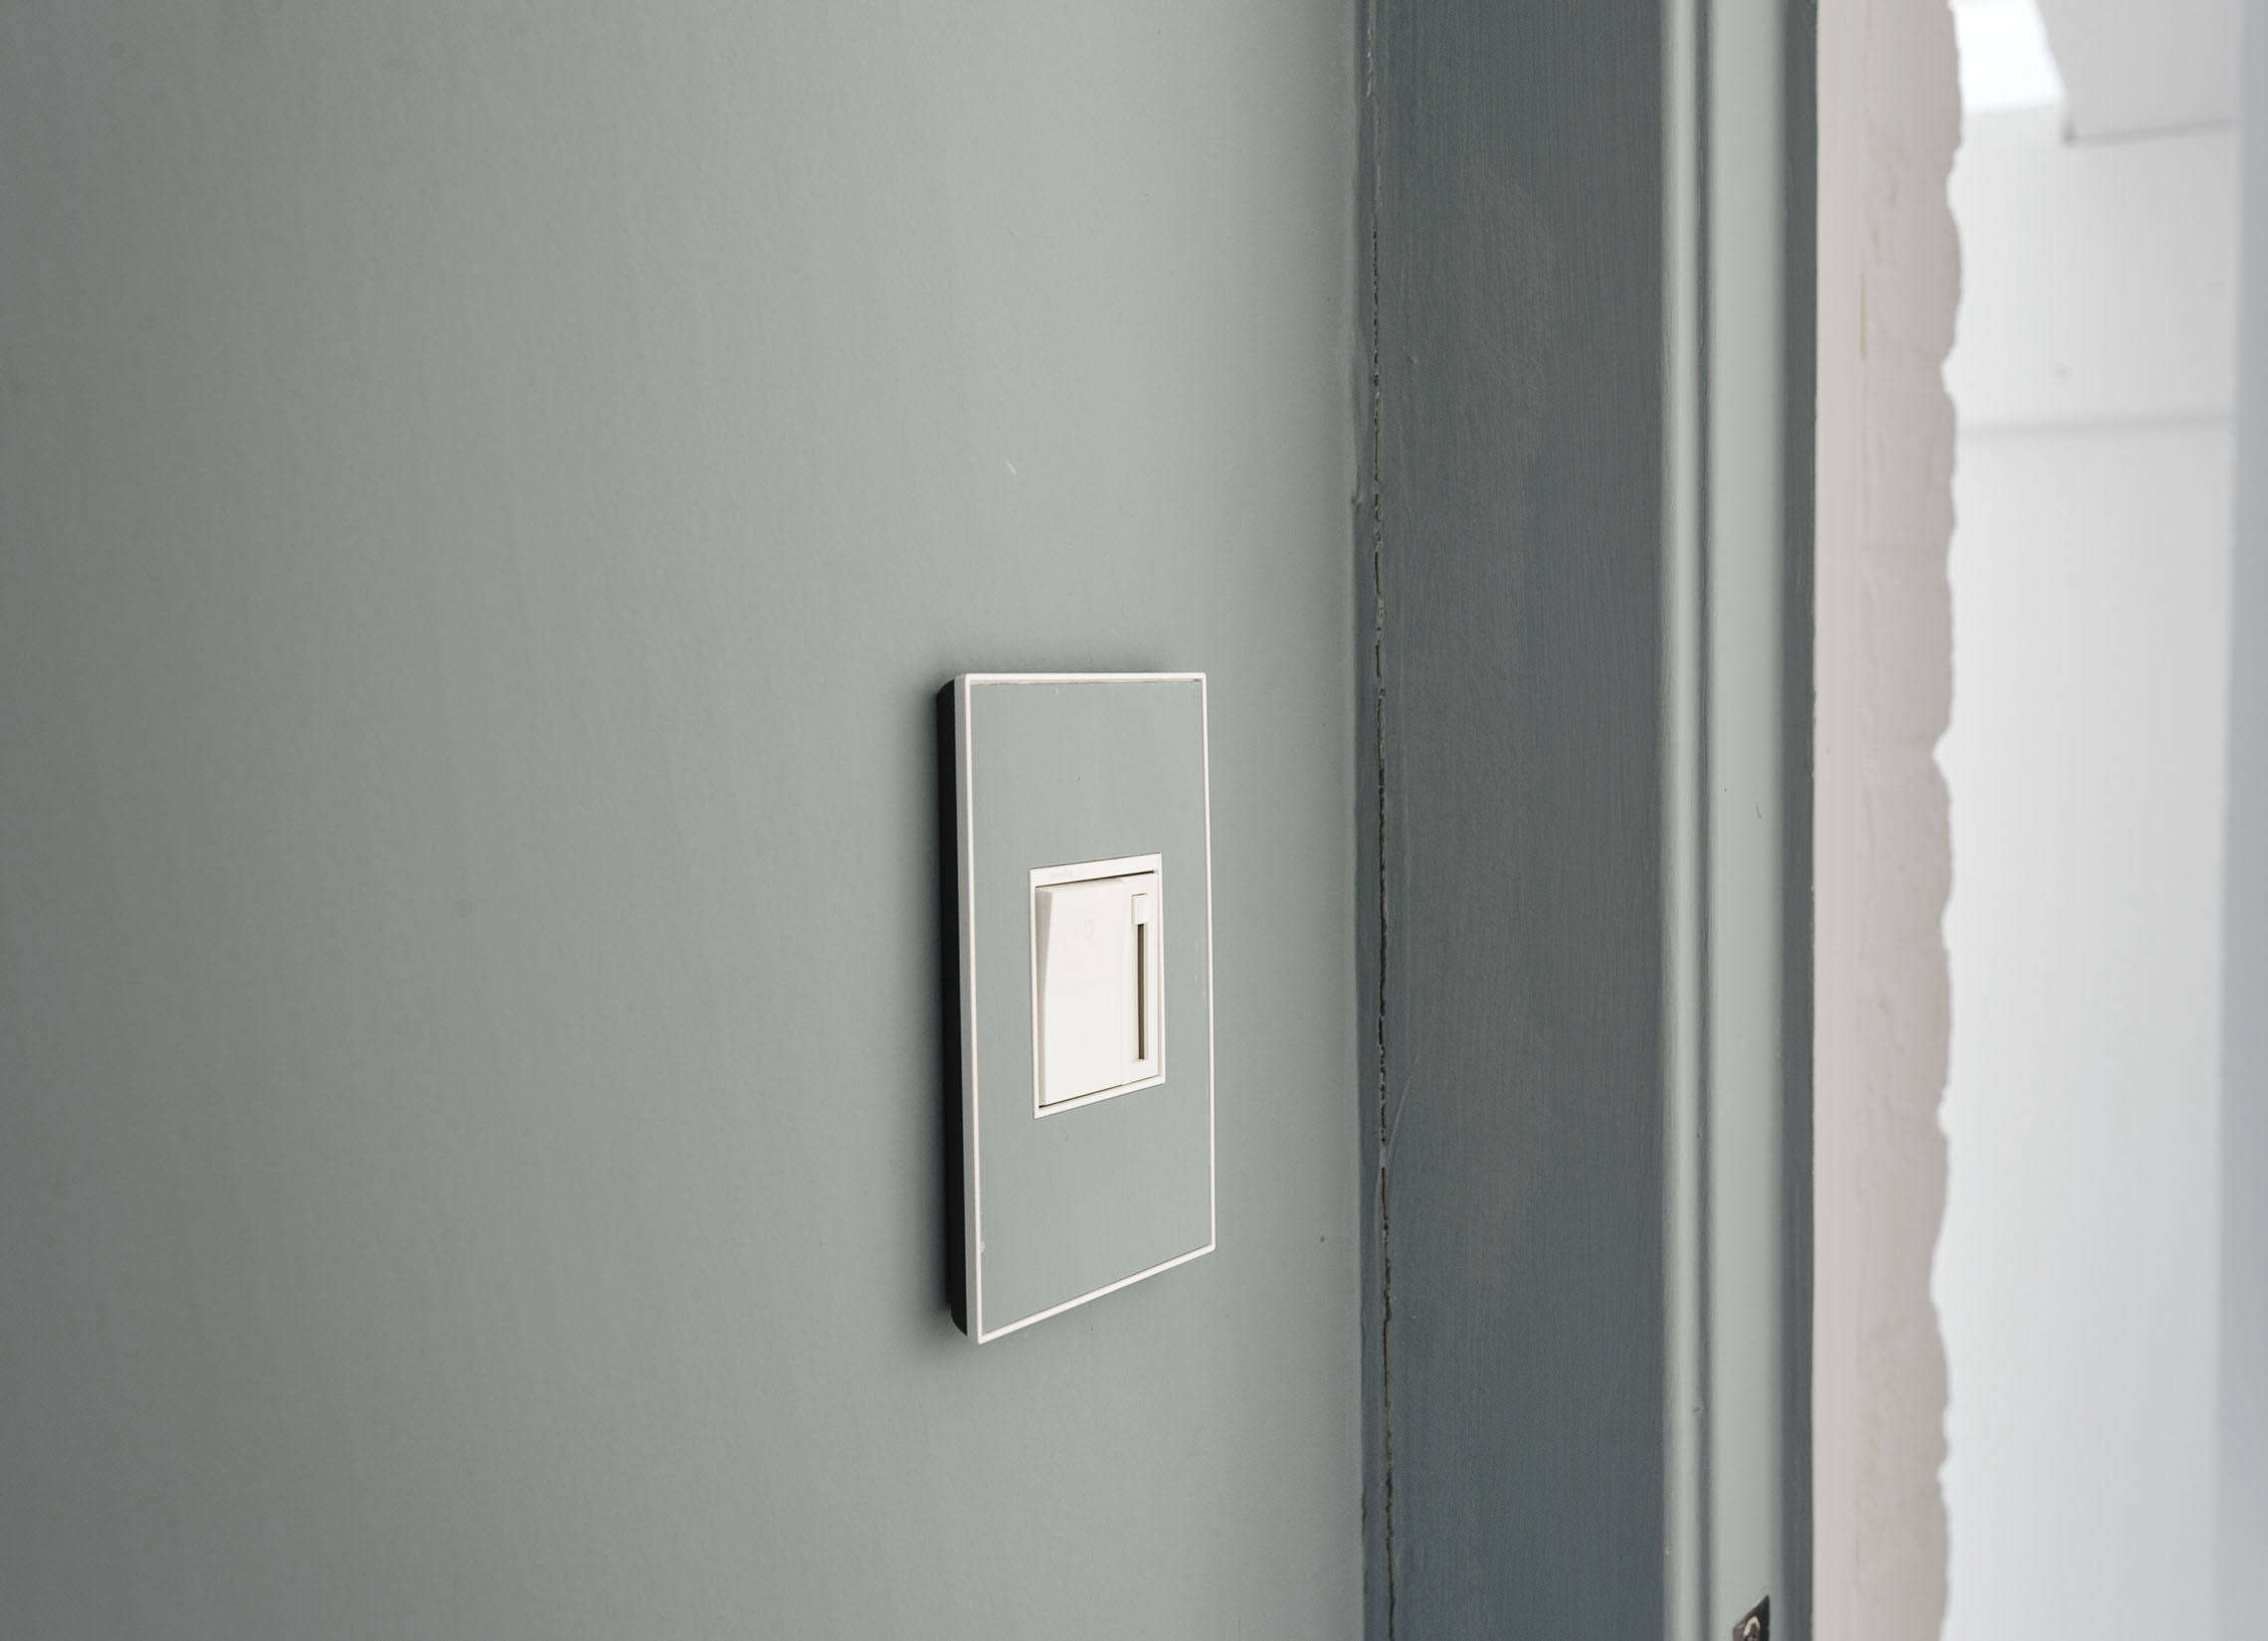 Legrand Adorne Wall Plates are available in custom colors. For more information see Legrand. Photograph from  Design Ideas to Steal from an Über Creative Remodel by Studio Oink. Studio Oink Washington D.C. Remodel.